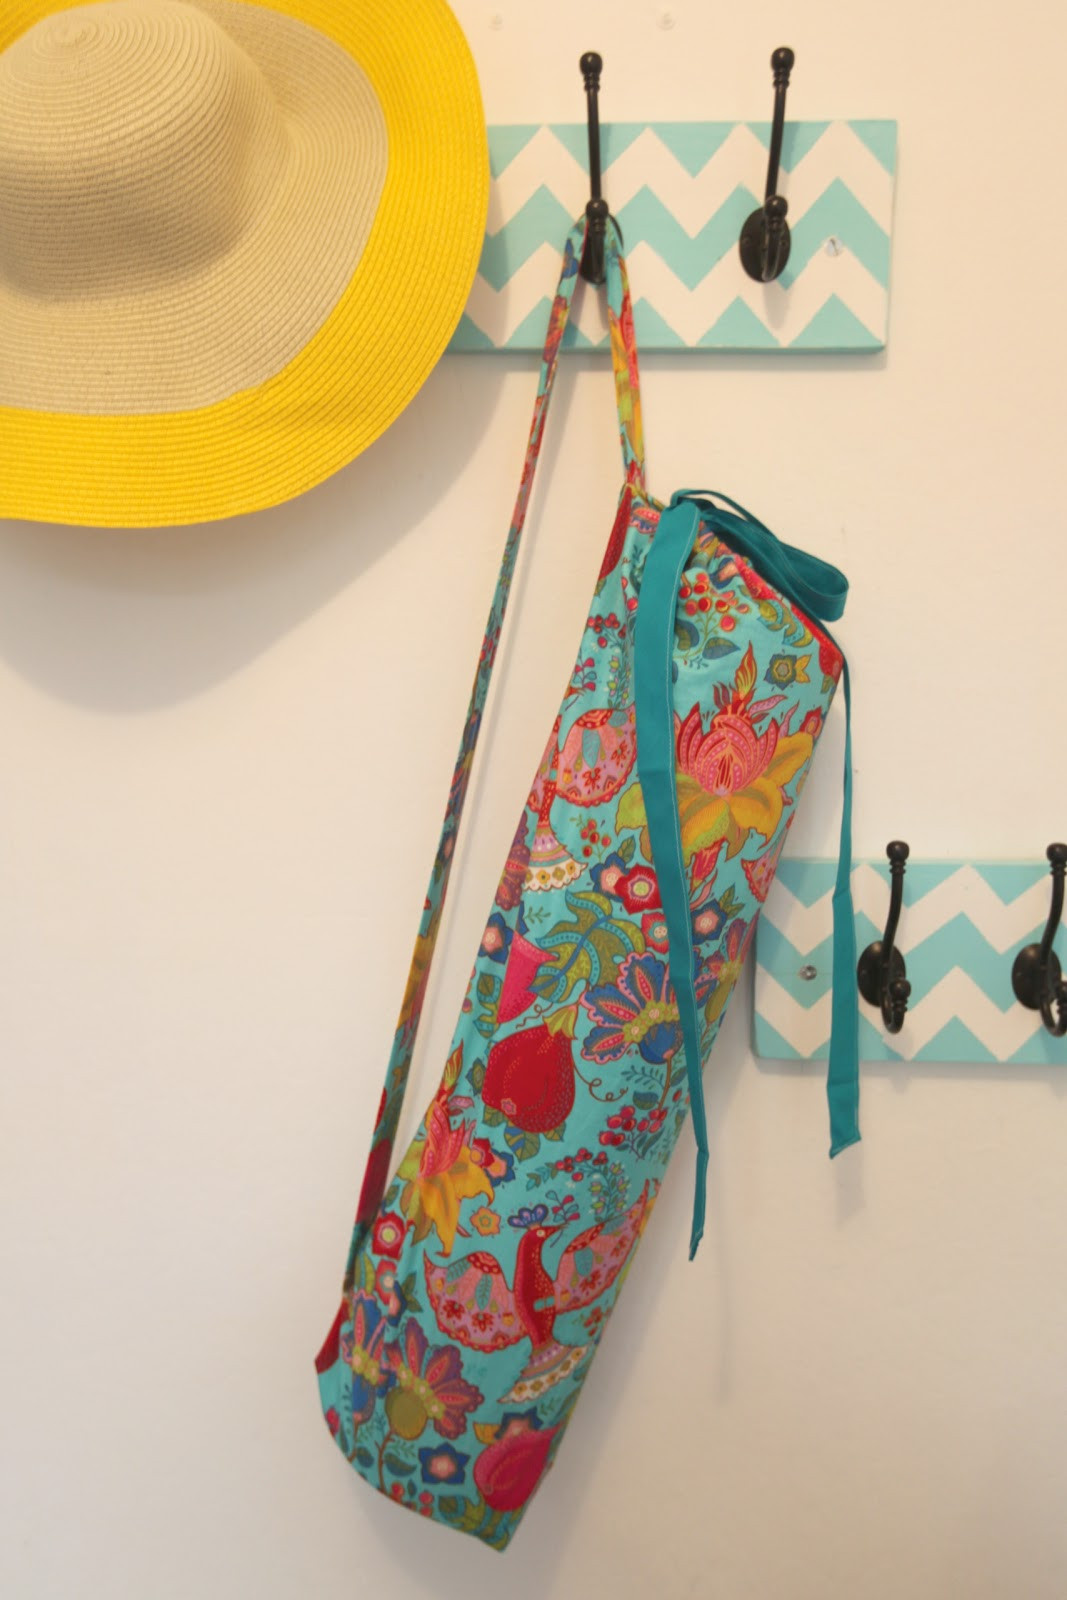 Best ideas about DIY Yoga Mat . Save or Pin Oh THAT Annelie DIY Project Yoga Mat Bag Now.